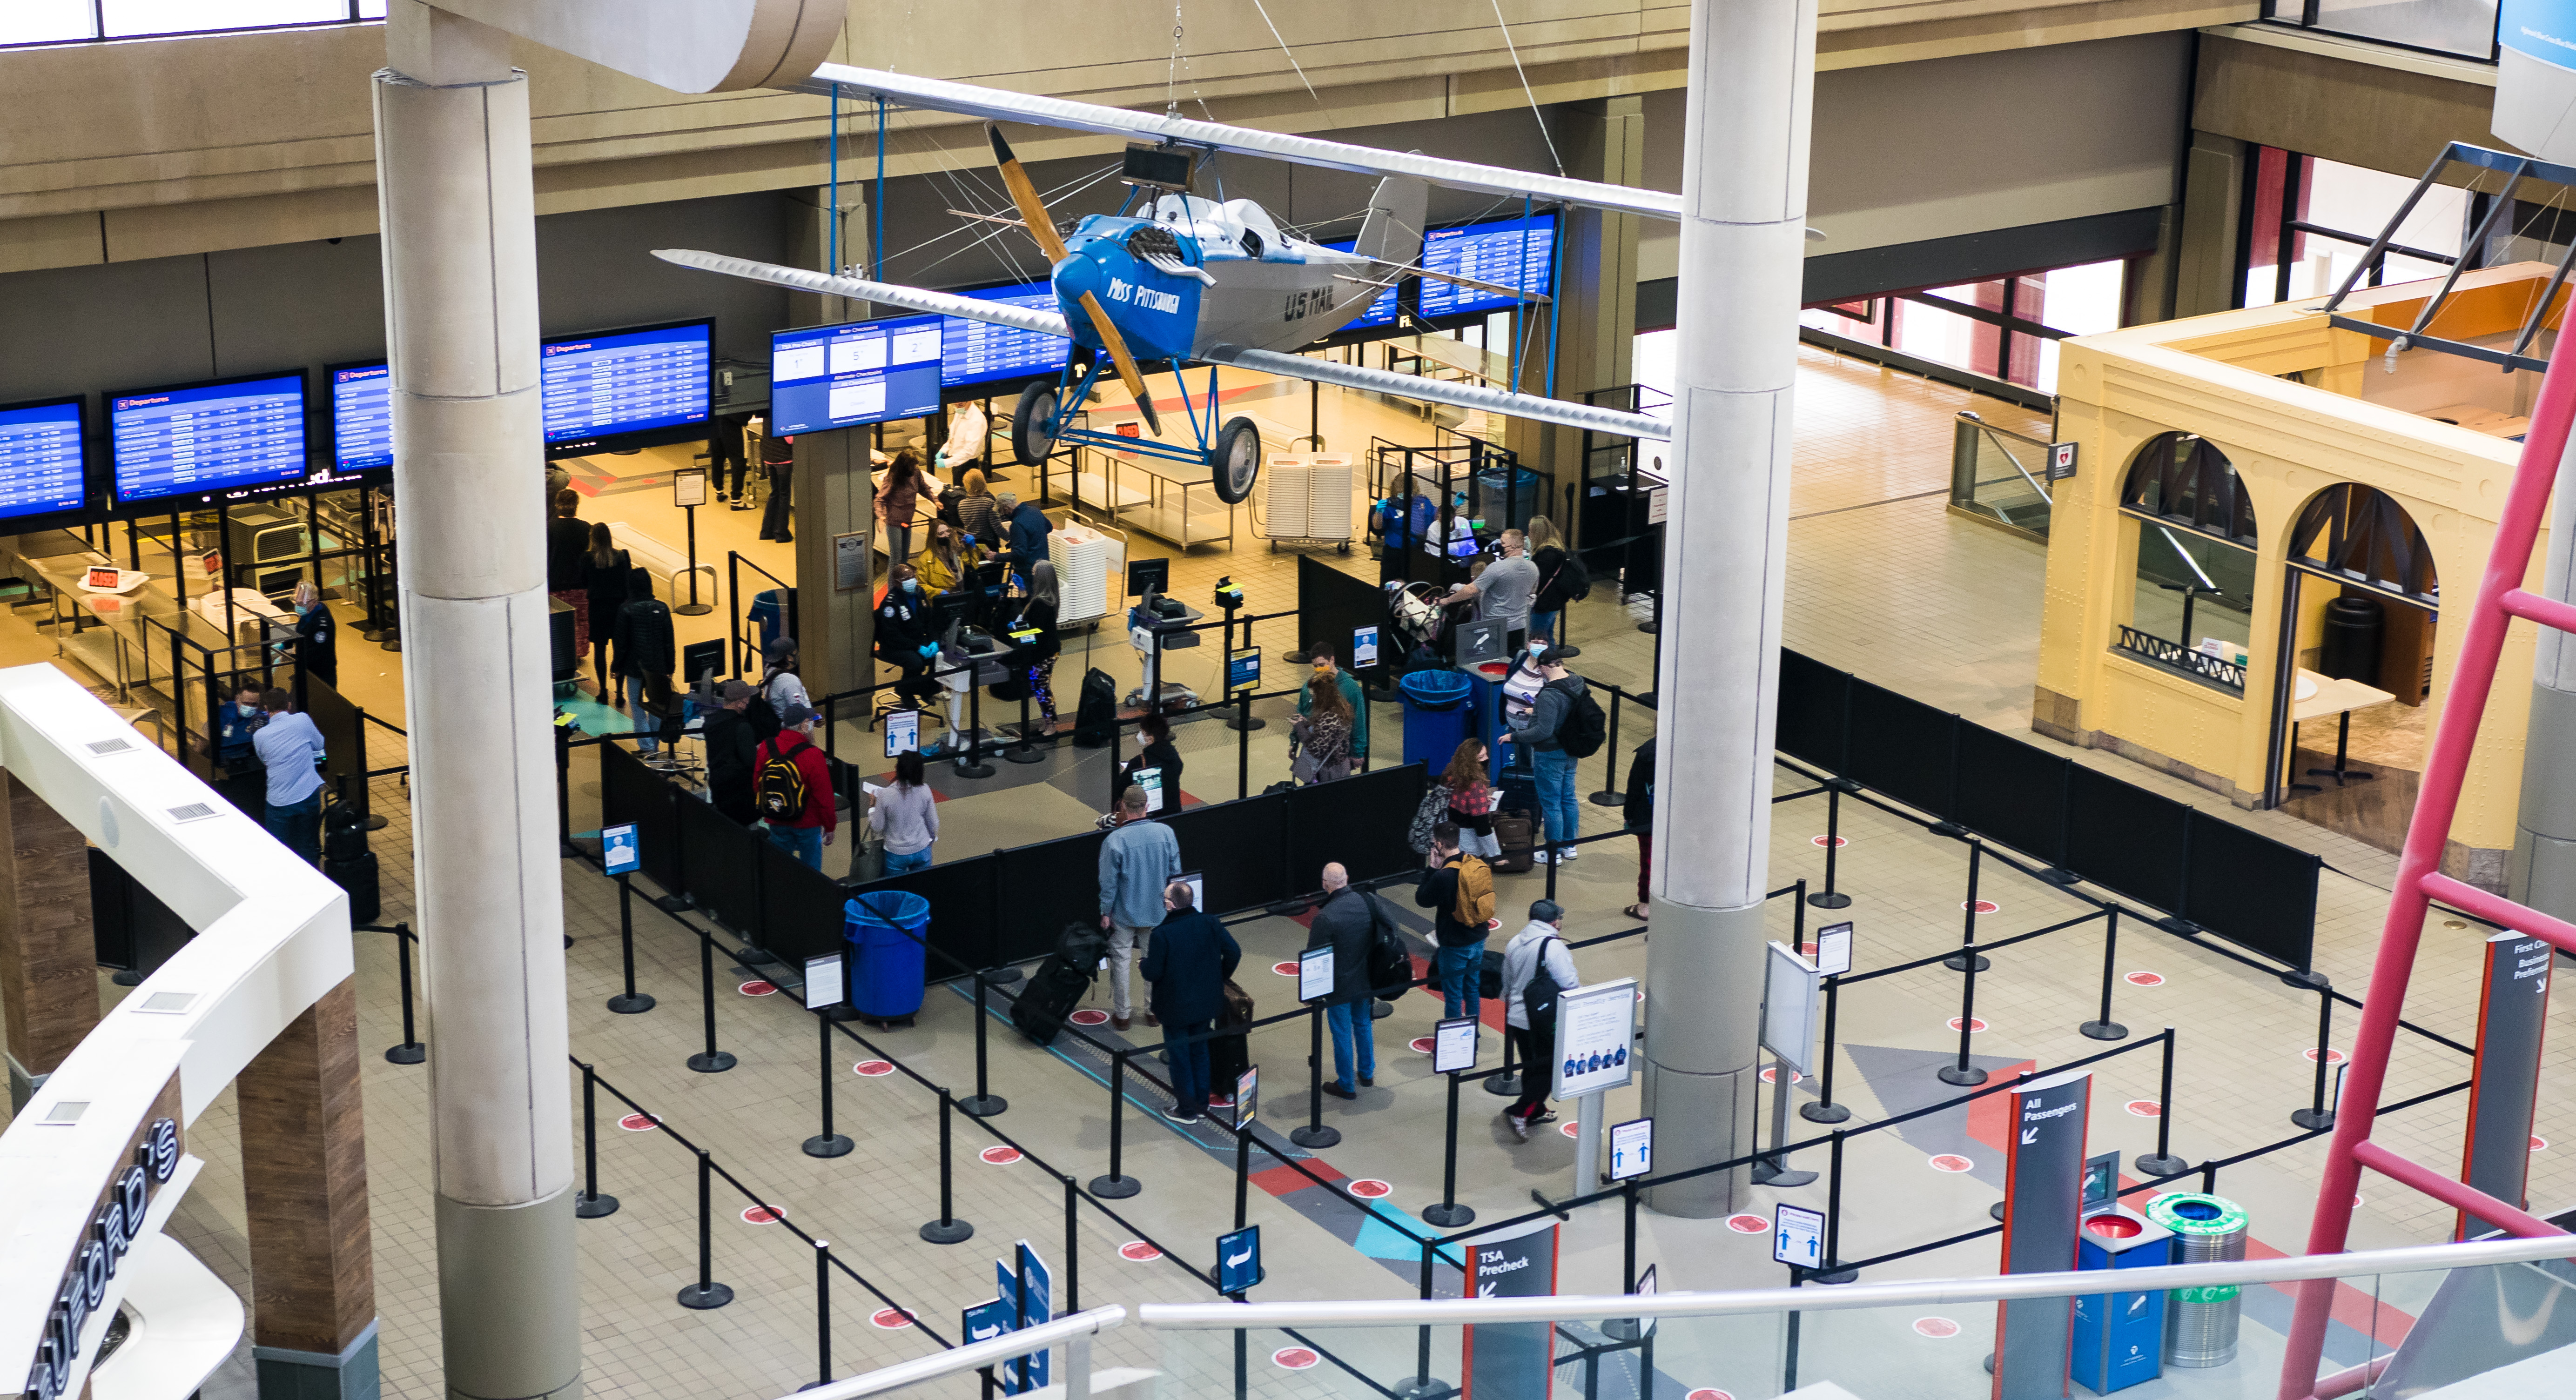 Traffic at region's airports 'starting to turn around' as more passengers take to the skies